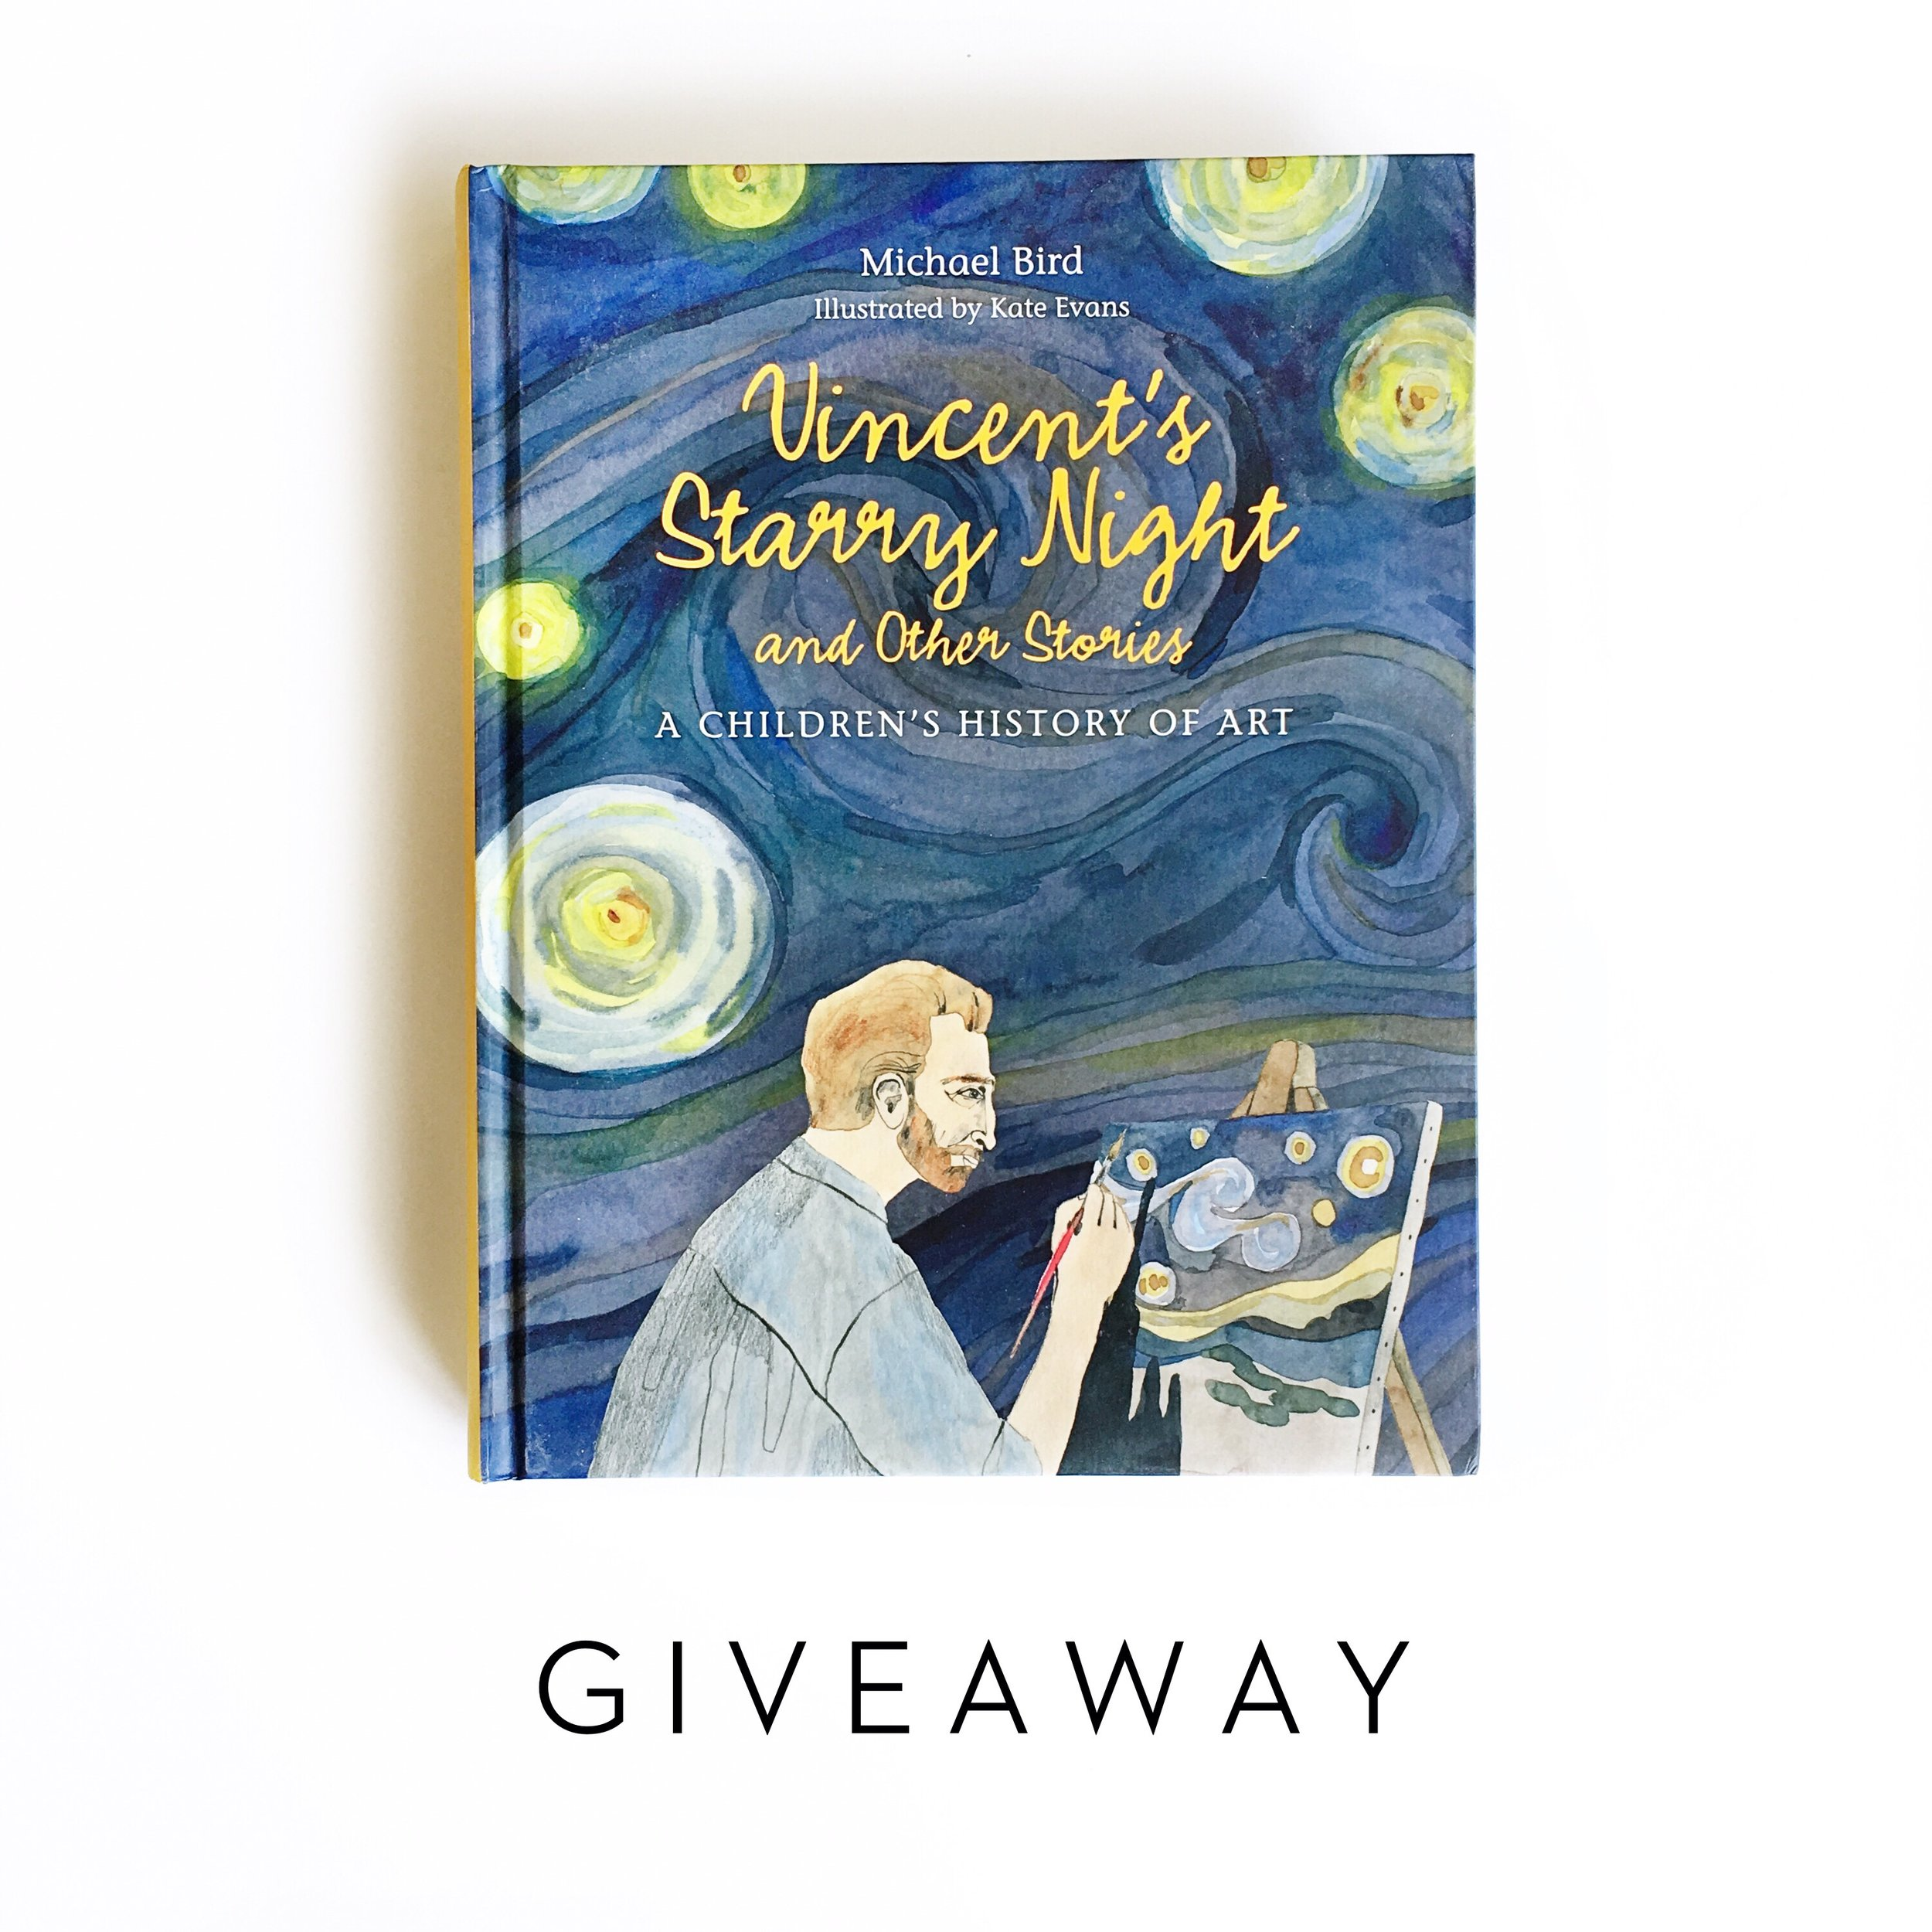 Vincents Starry Night + Giveaway | Little Lit Book Series